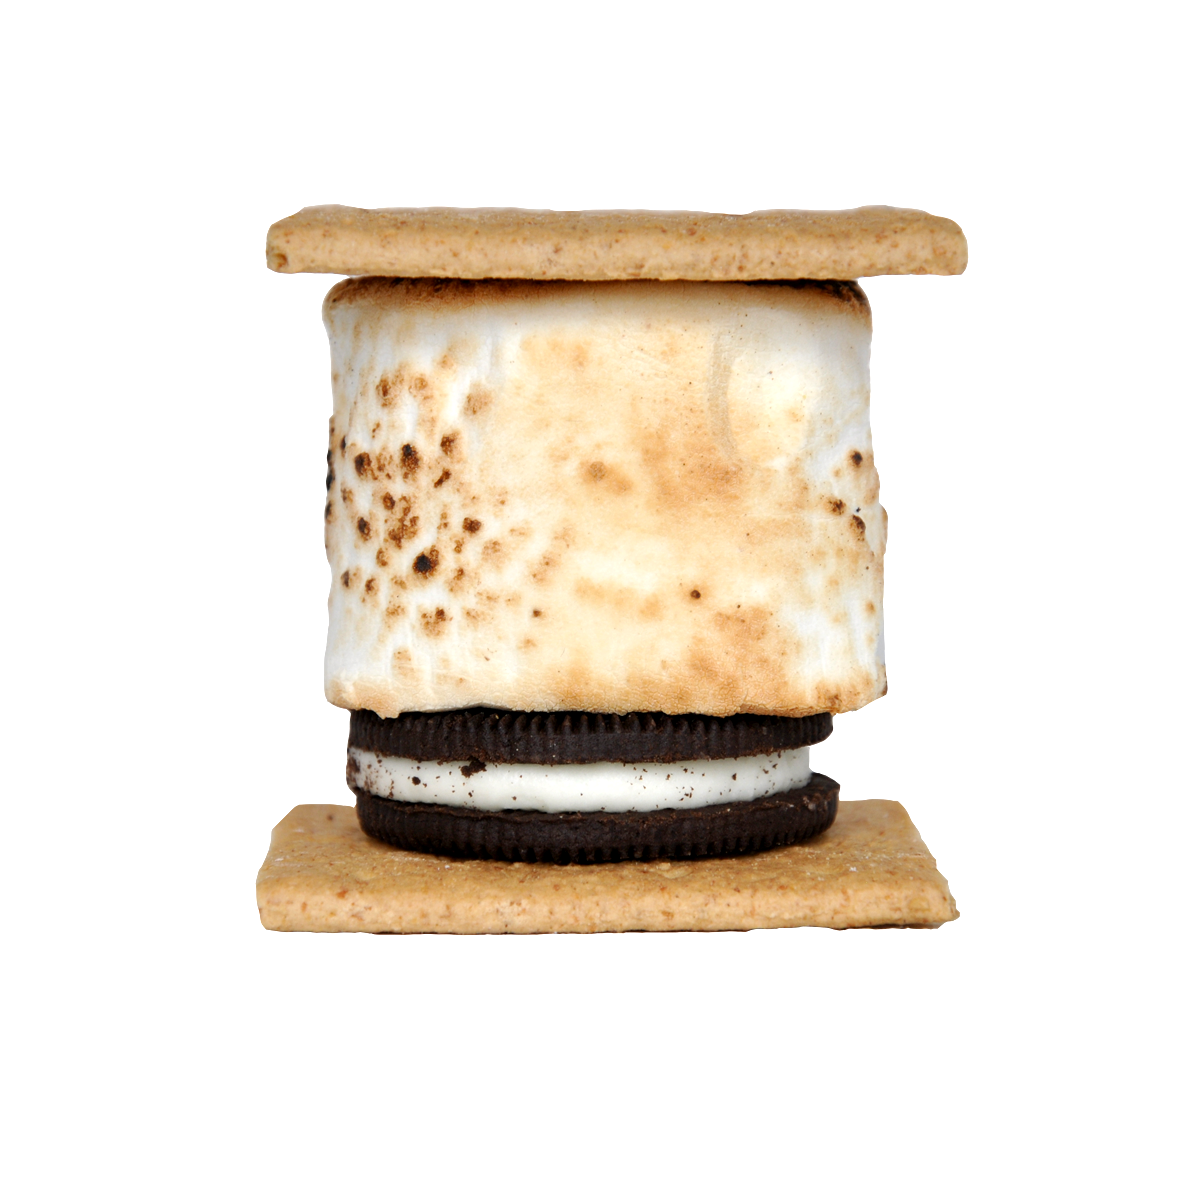 s'moreo.png